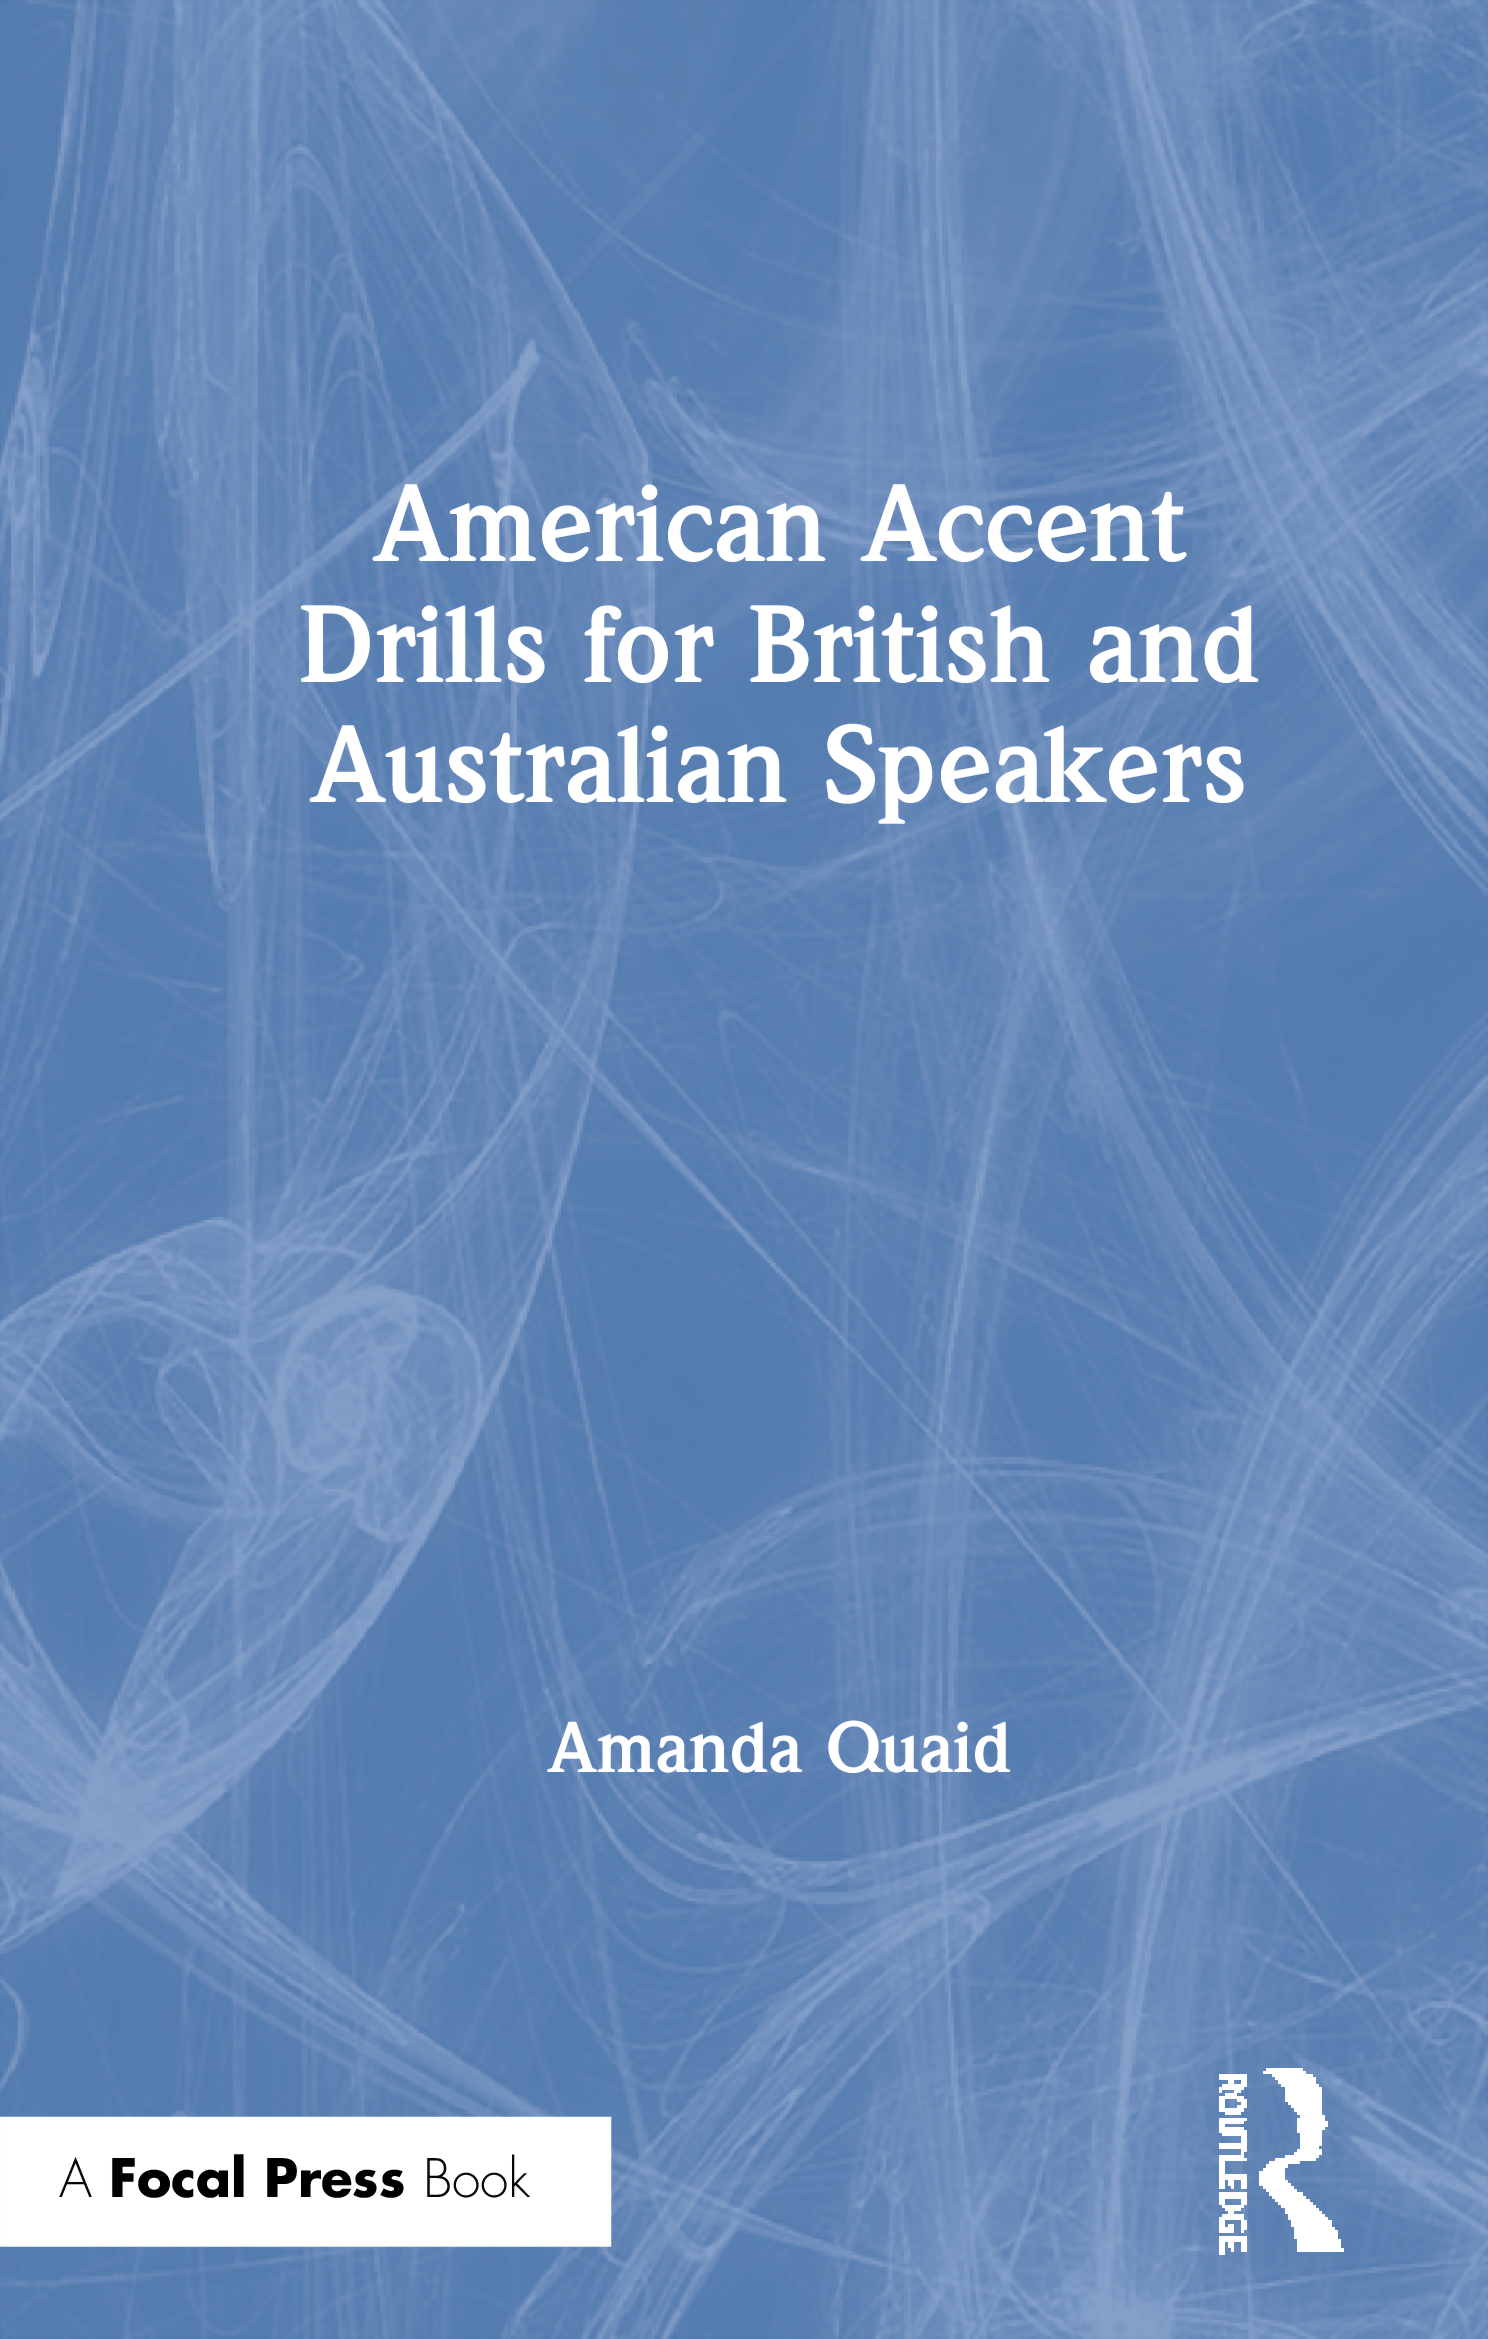 American Accent Drills for British and Australian Speakers book cover